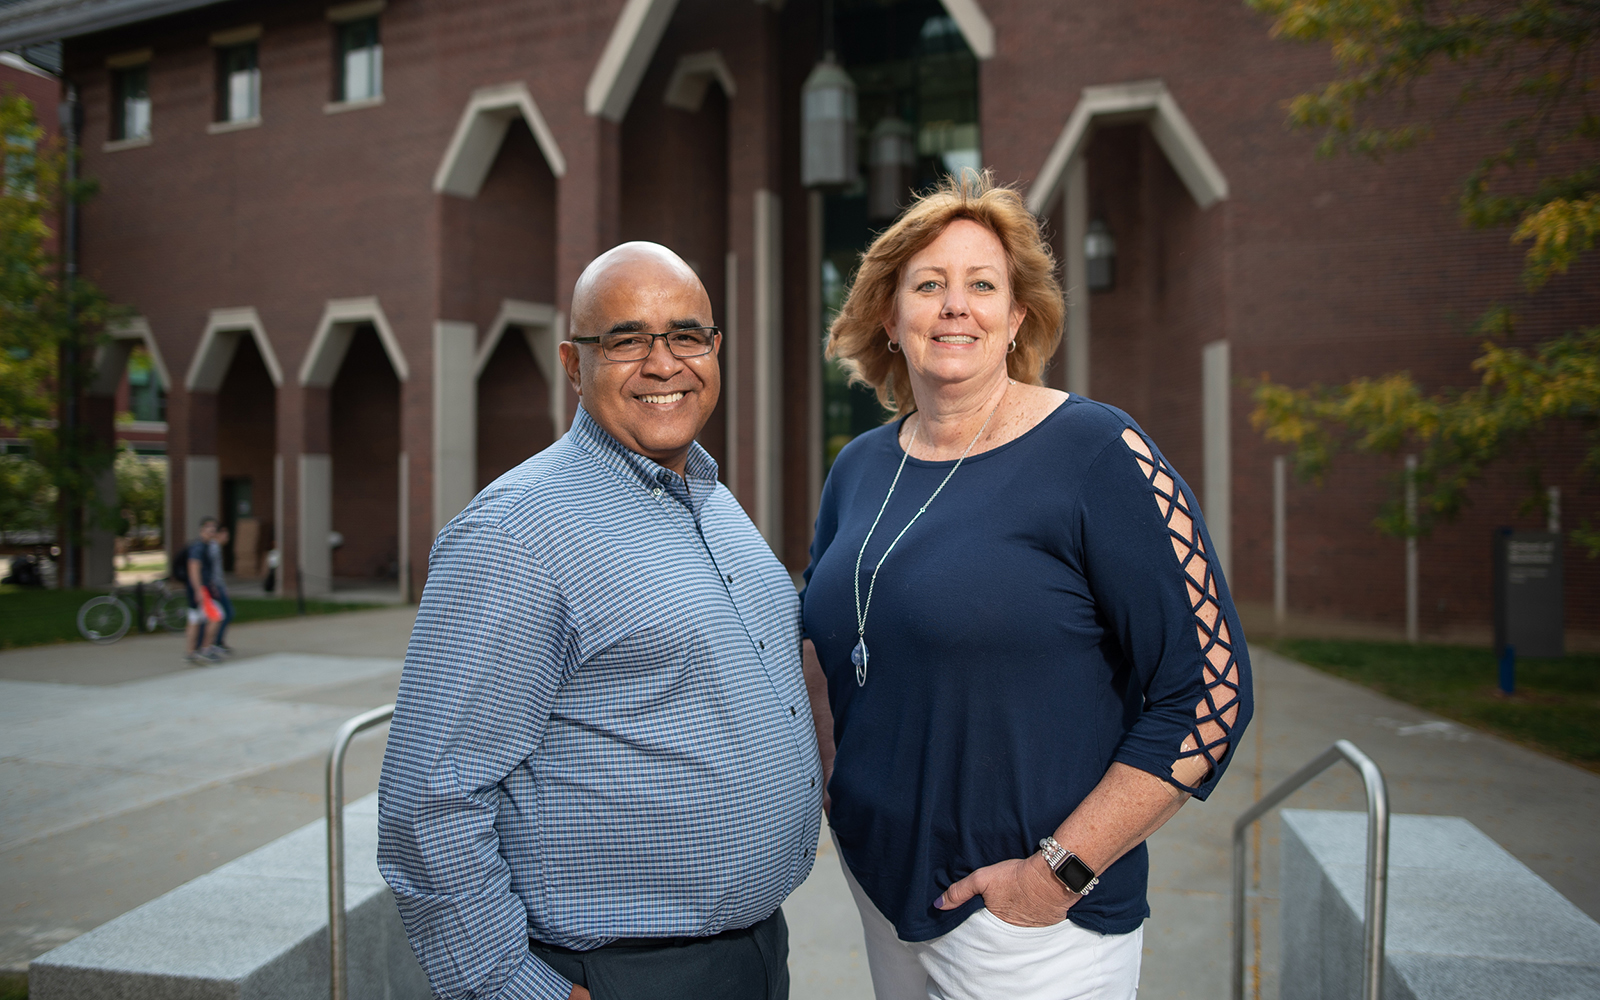 Associate Deans Jose Cruz and Lucy Gilson